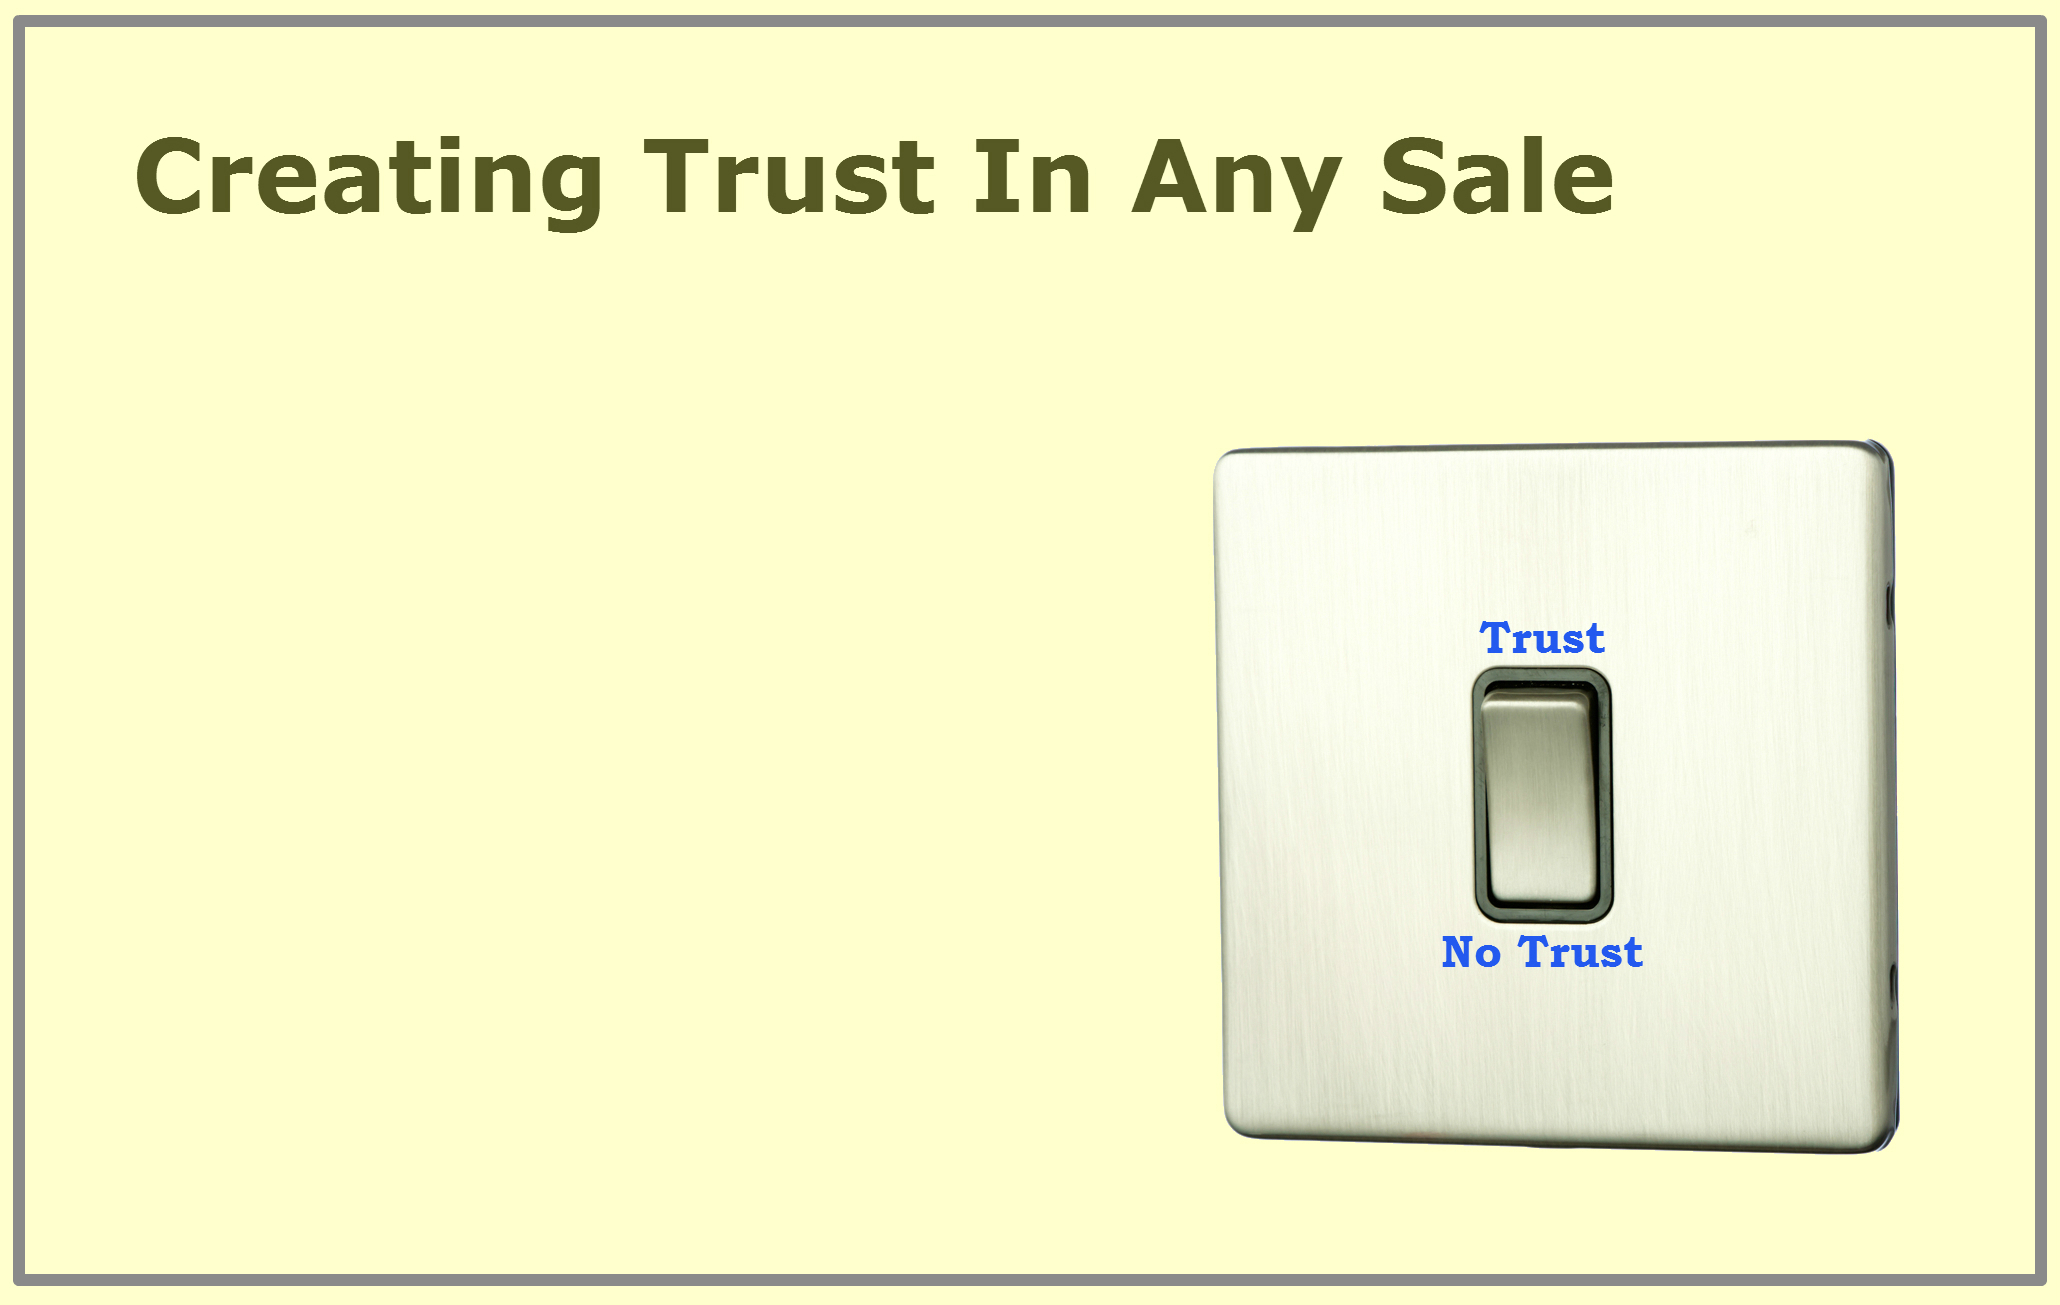 Conflict Resolution Strategies: Creating trust in any sale